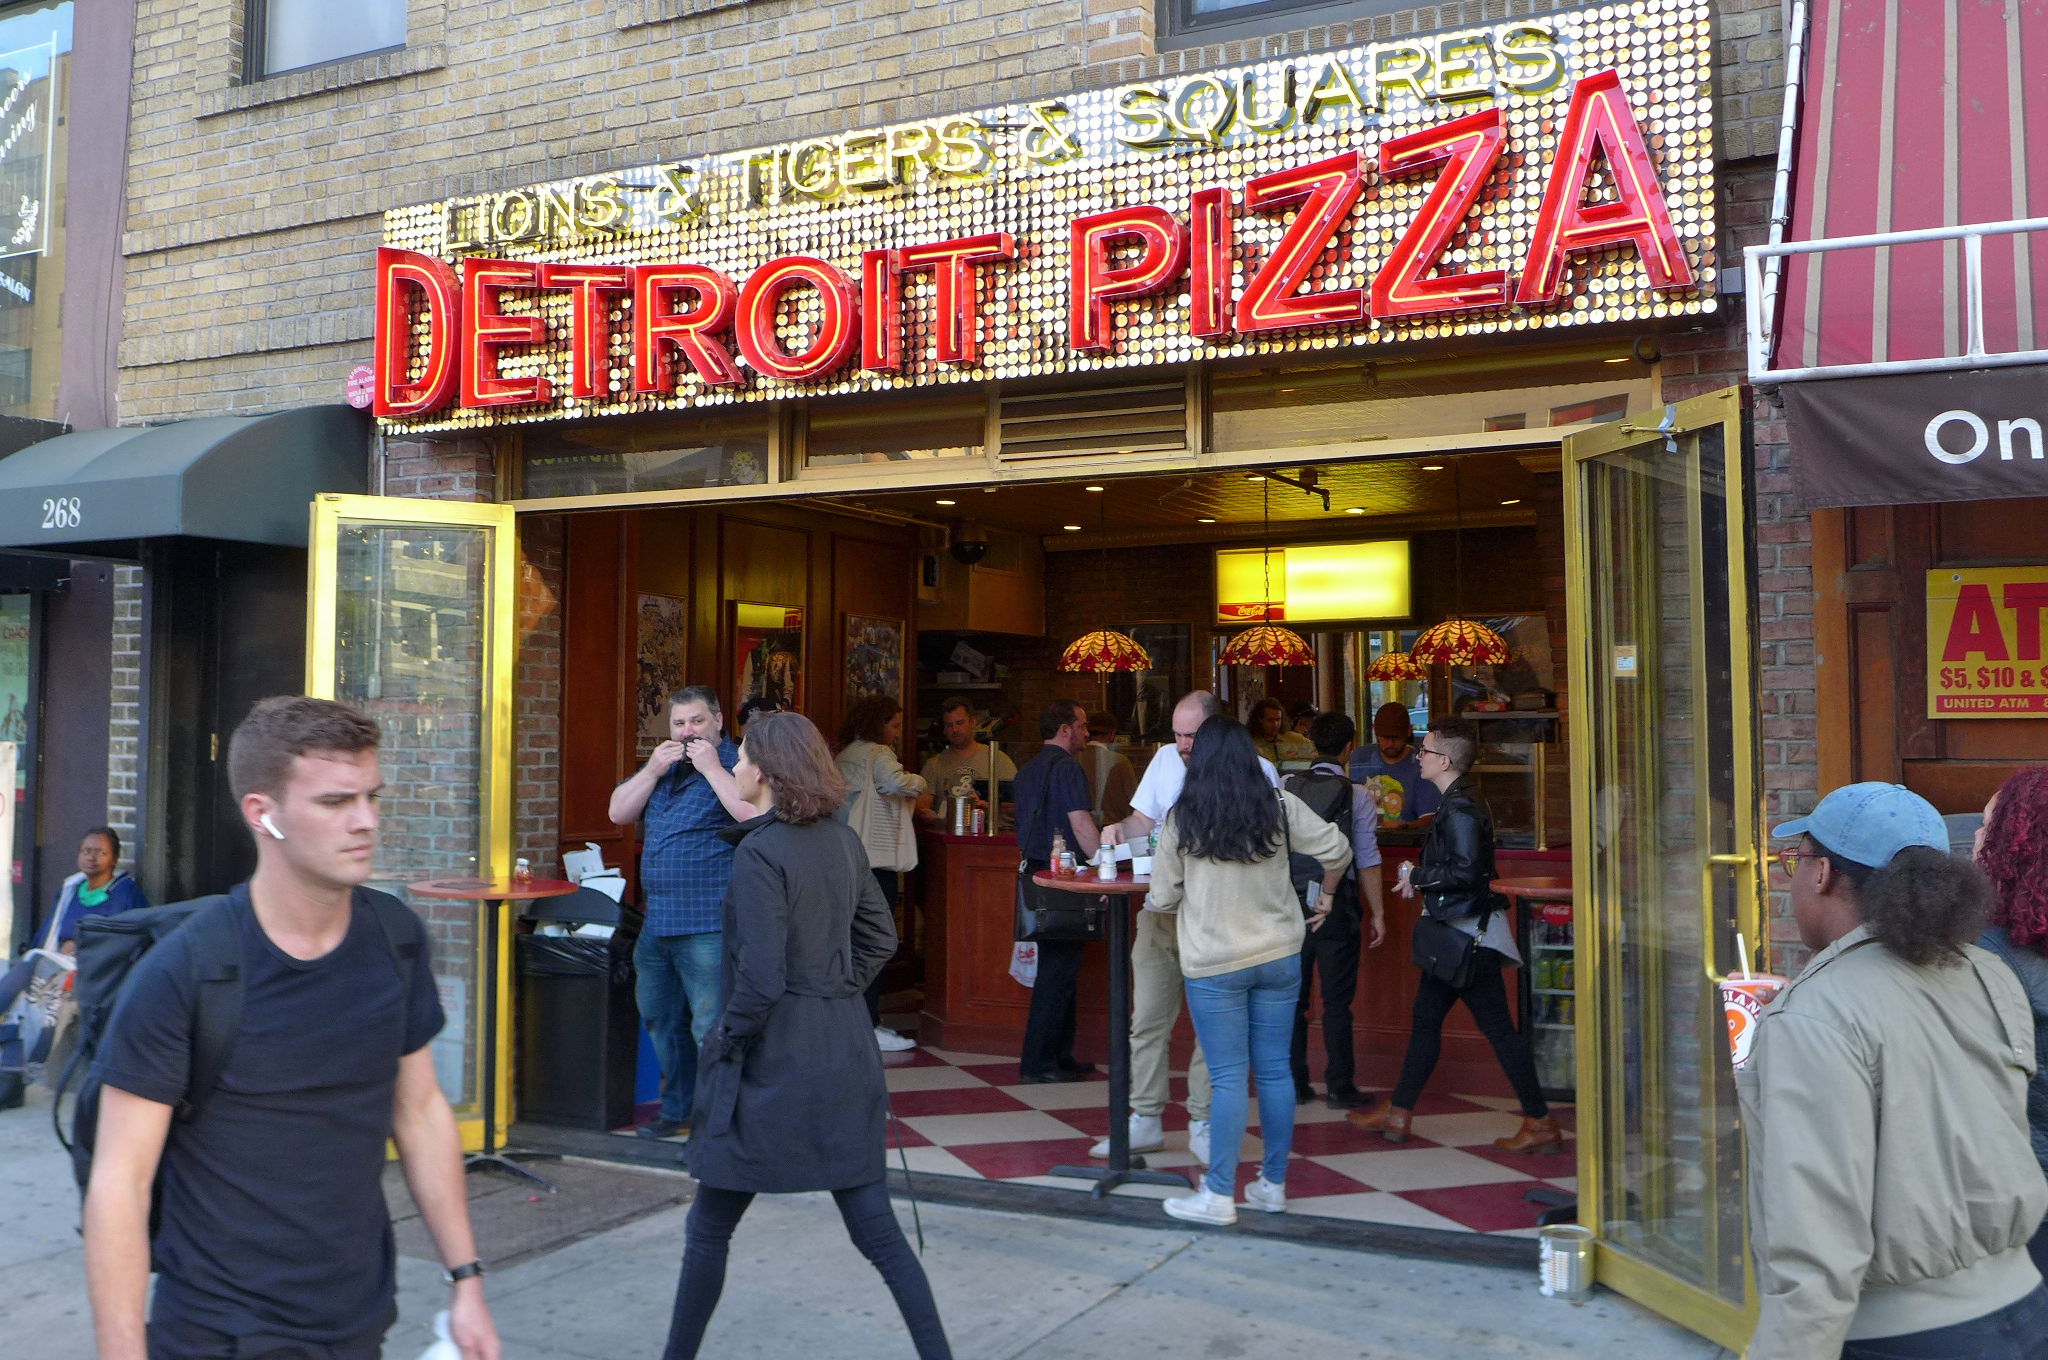 The latest purveyor of Detroit style pizza is Chelsea's Lions & Tigers & Squares.